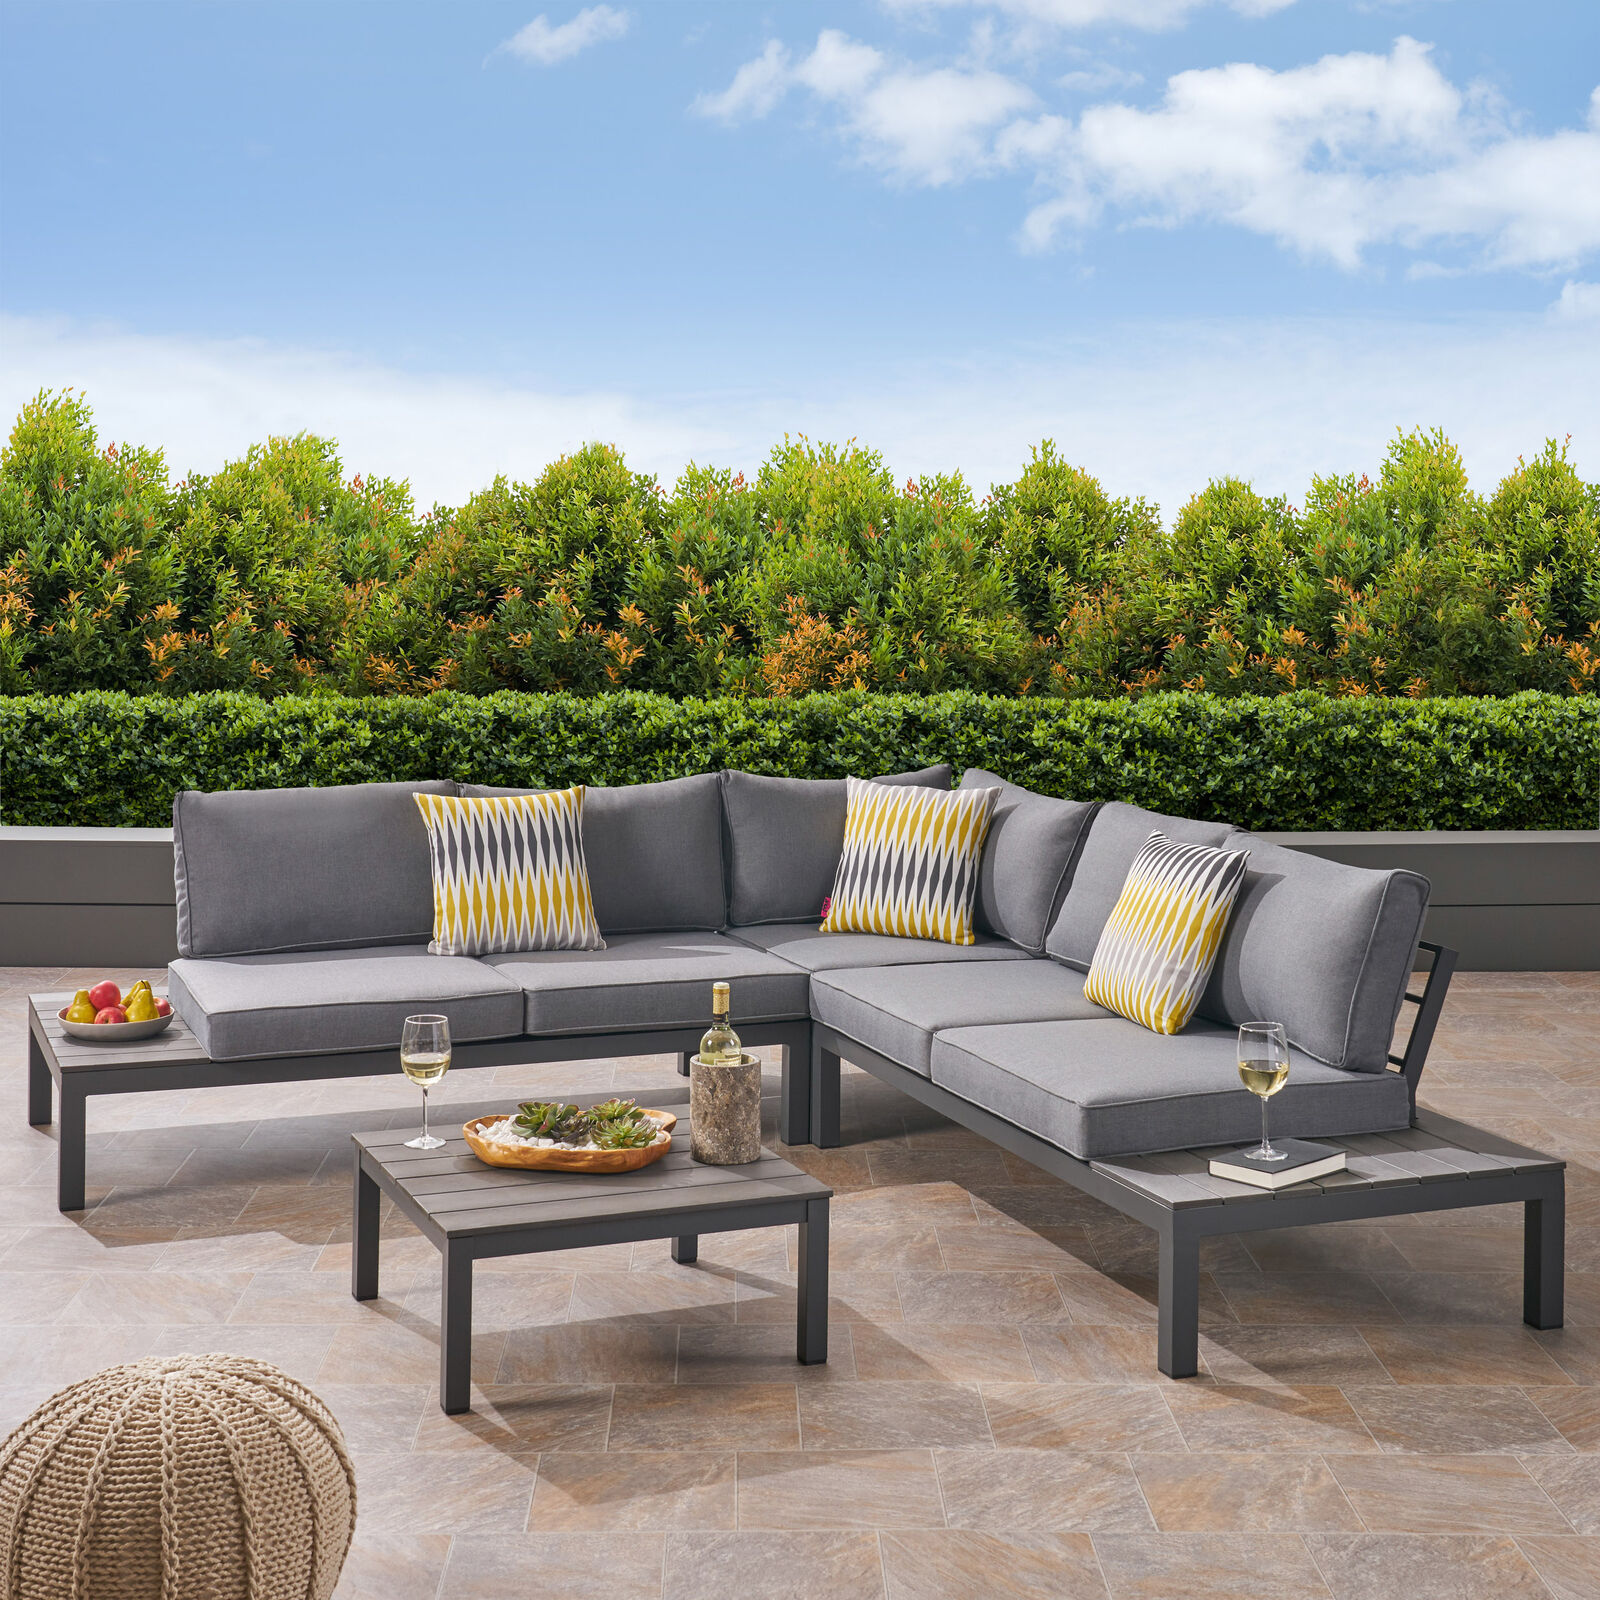 Blessen Outdoor Aluminum and Wood V-Shaped Sofa Set with Cushions Home & Garden